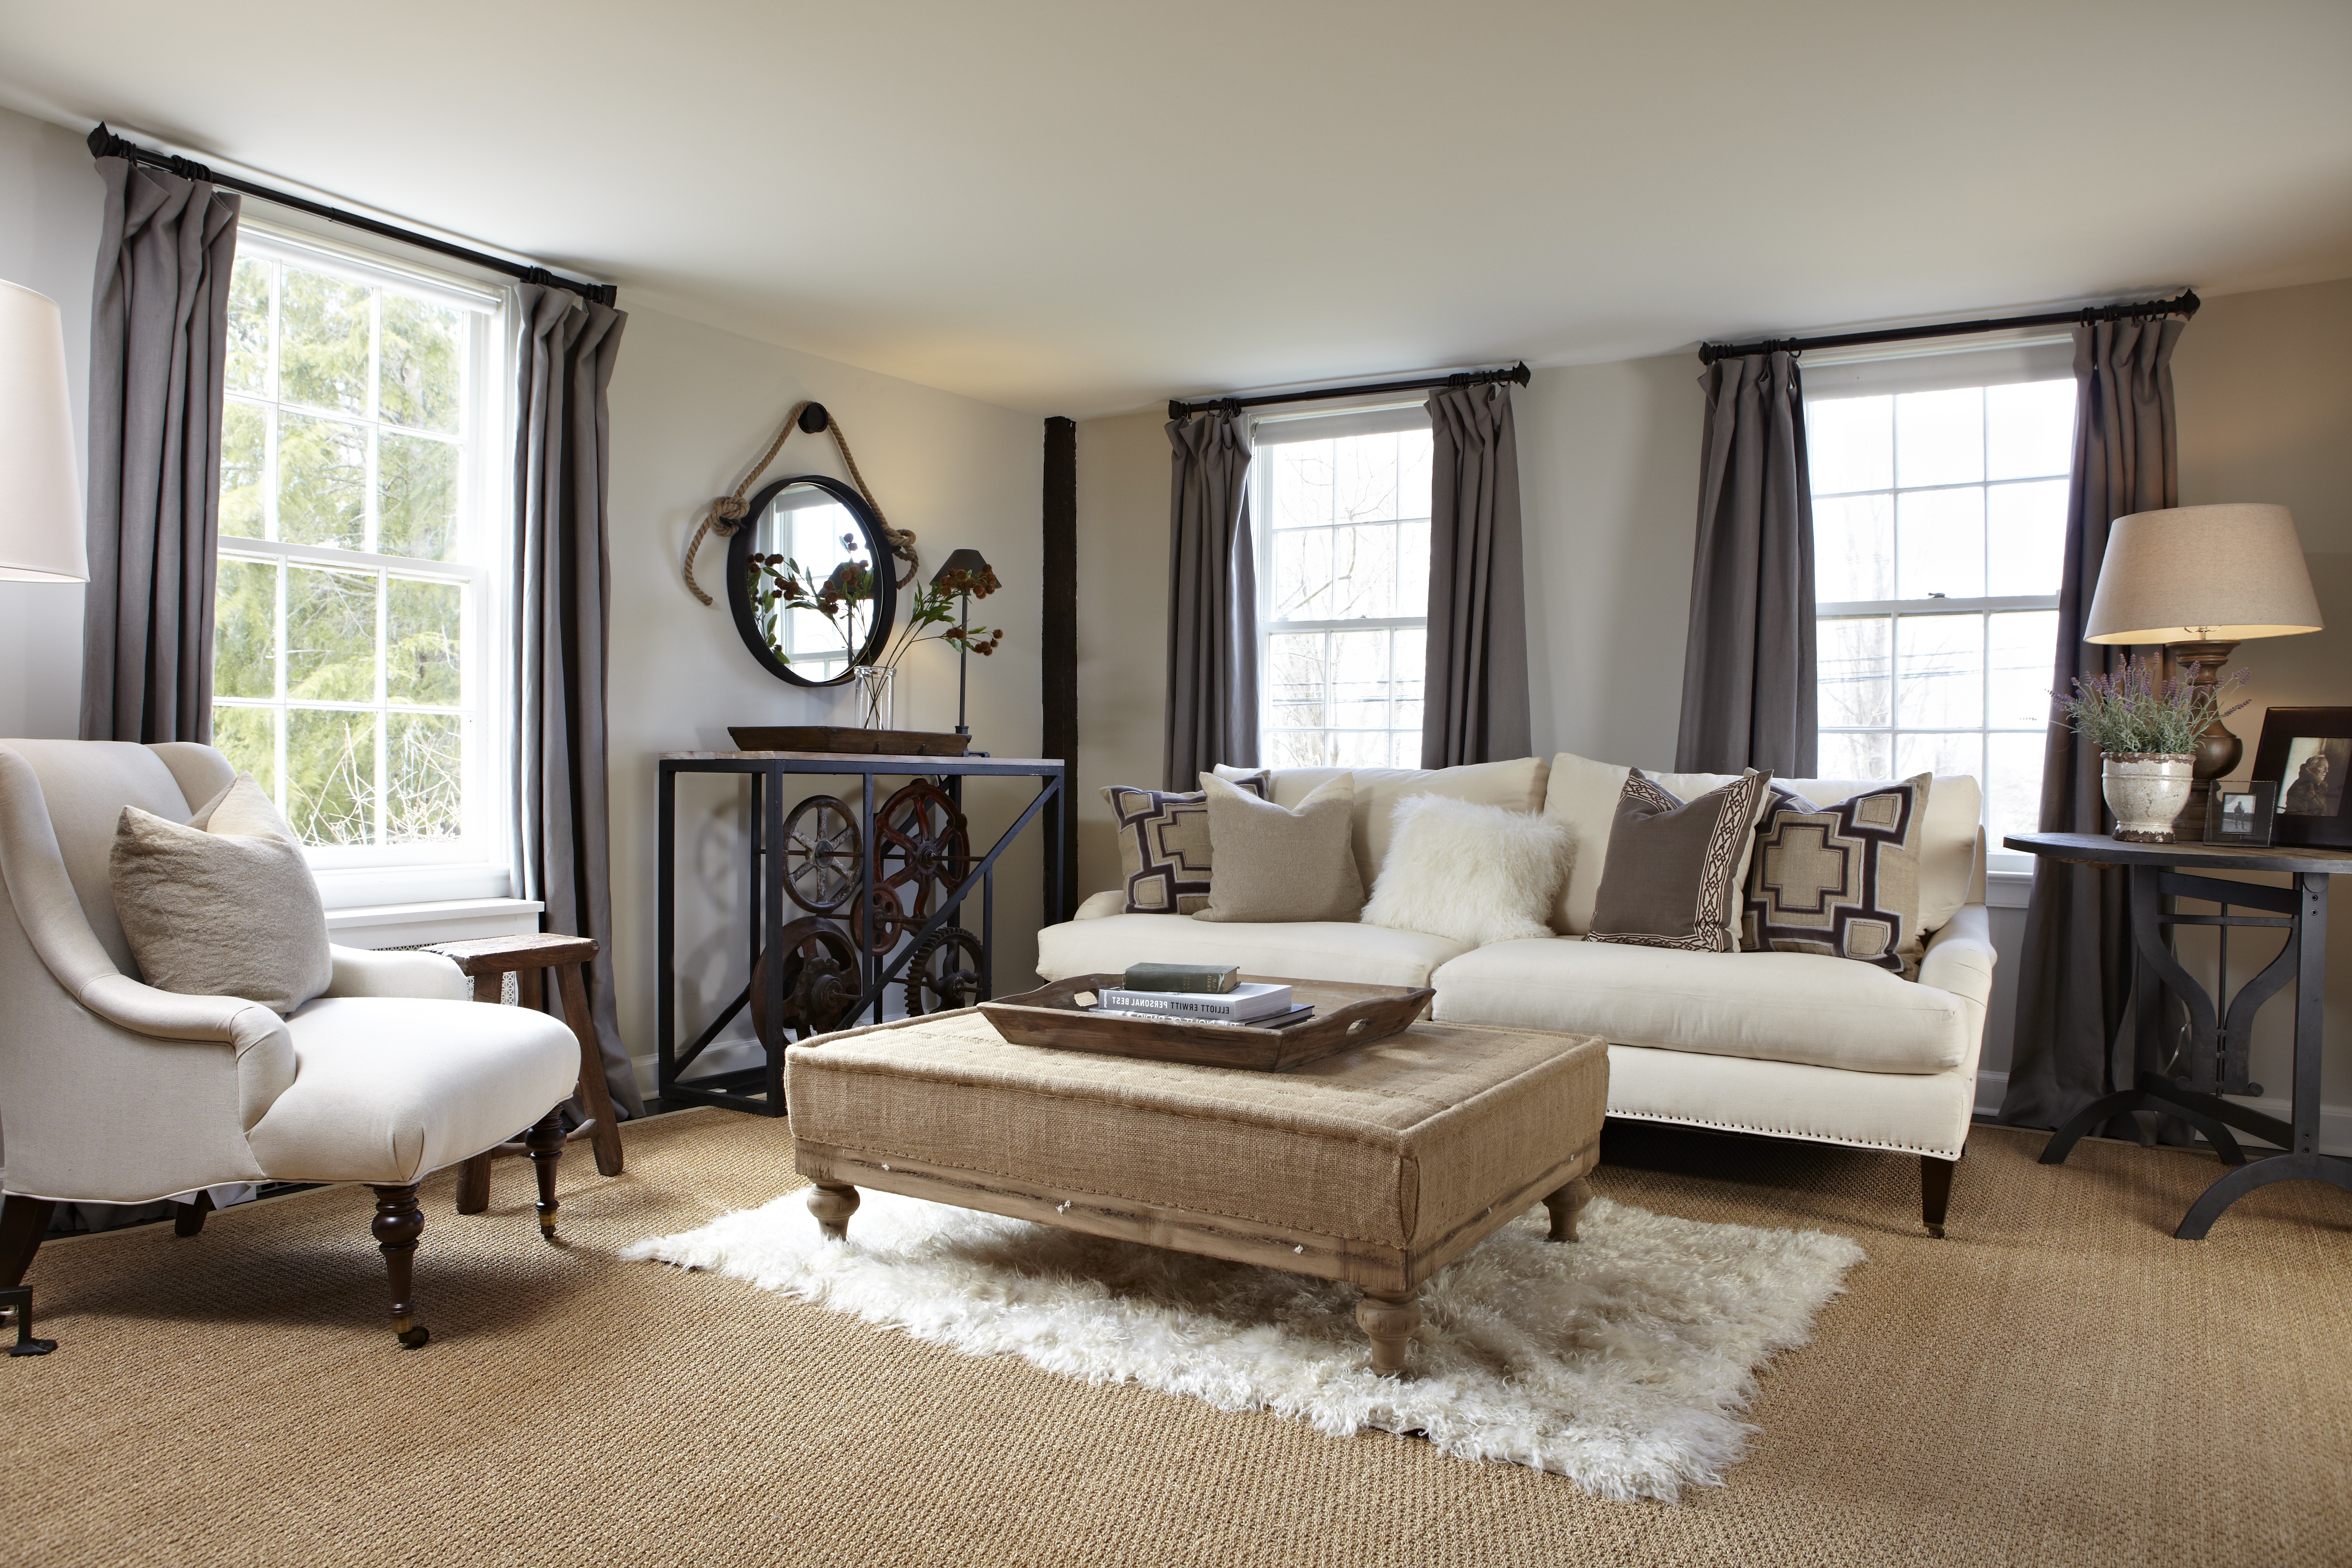 French Country Living Room With Gray Curtains (View 17 of 18)